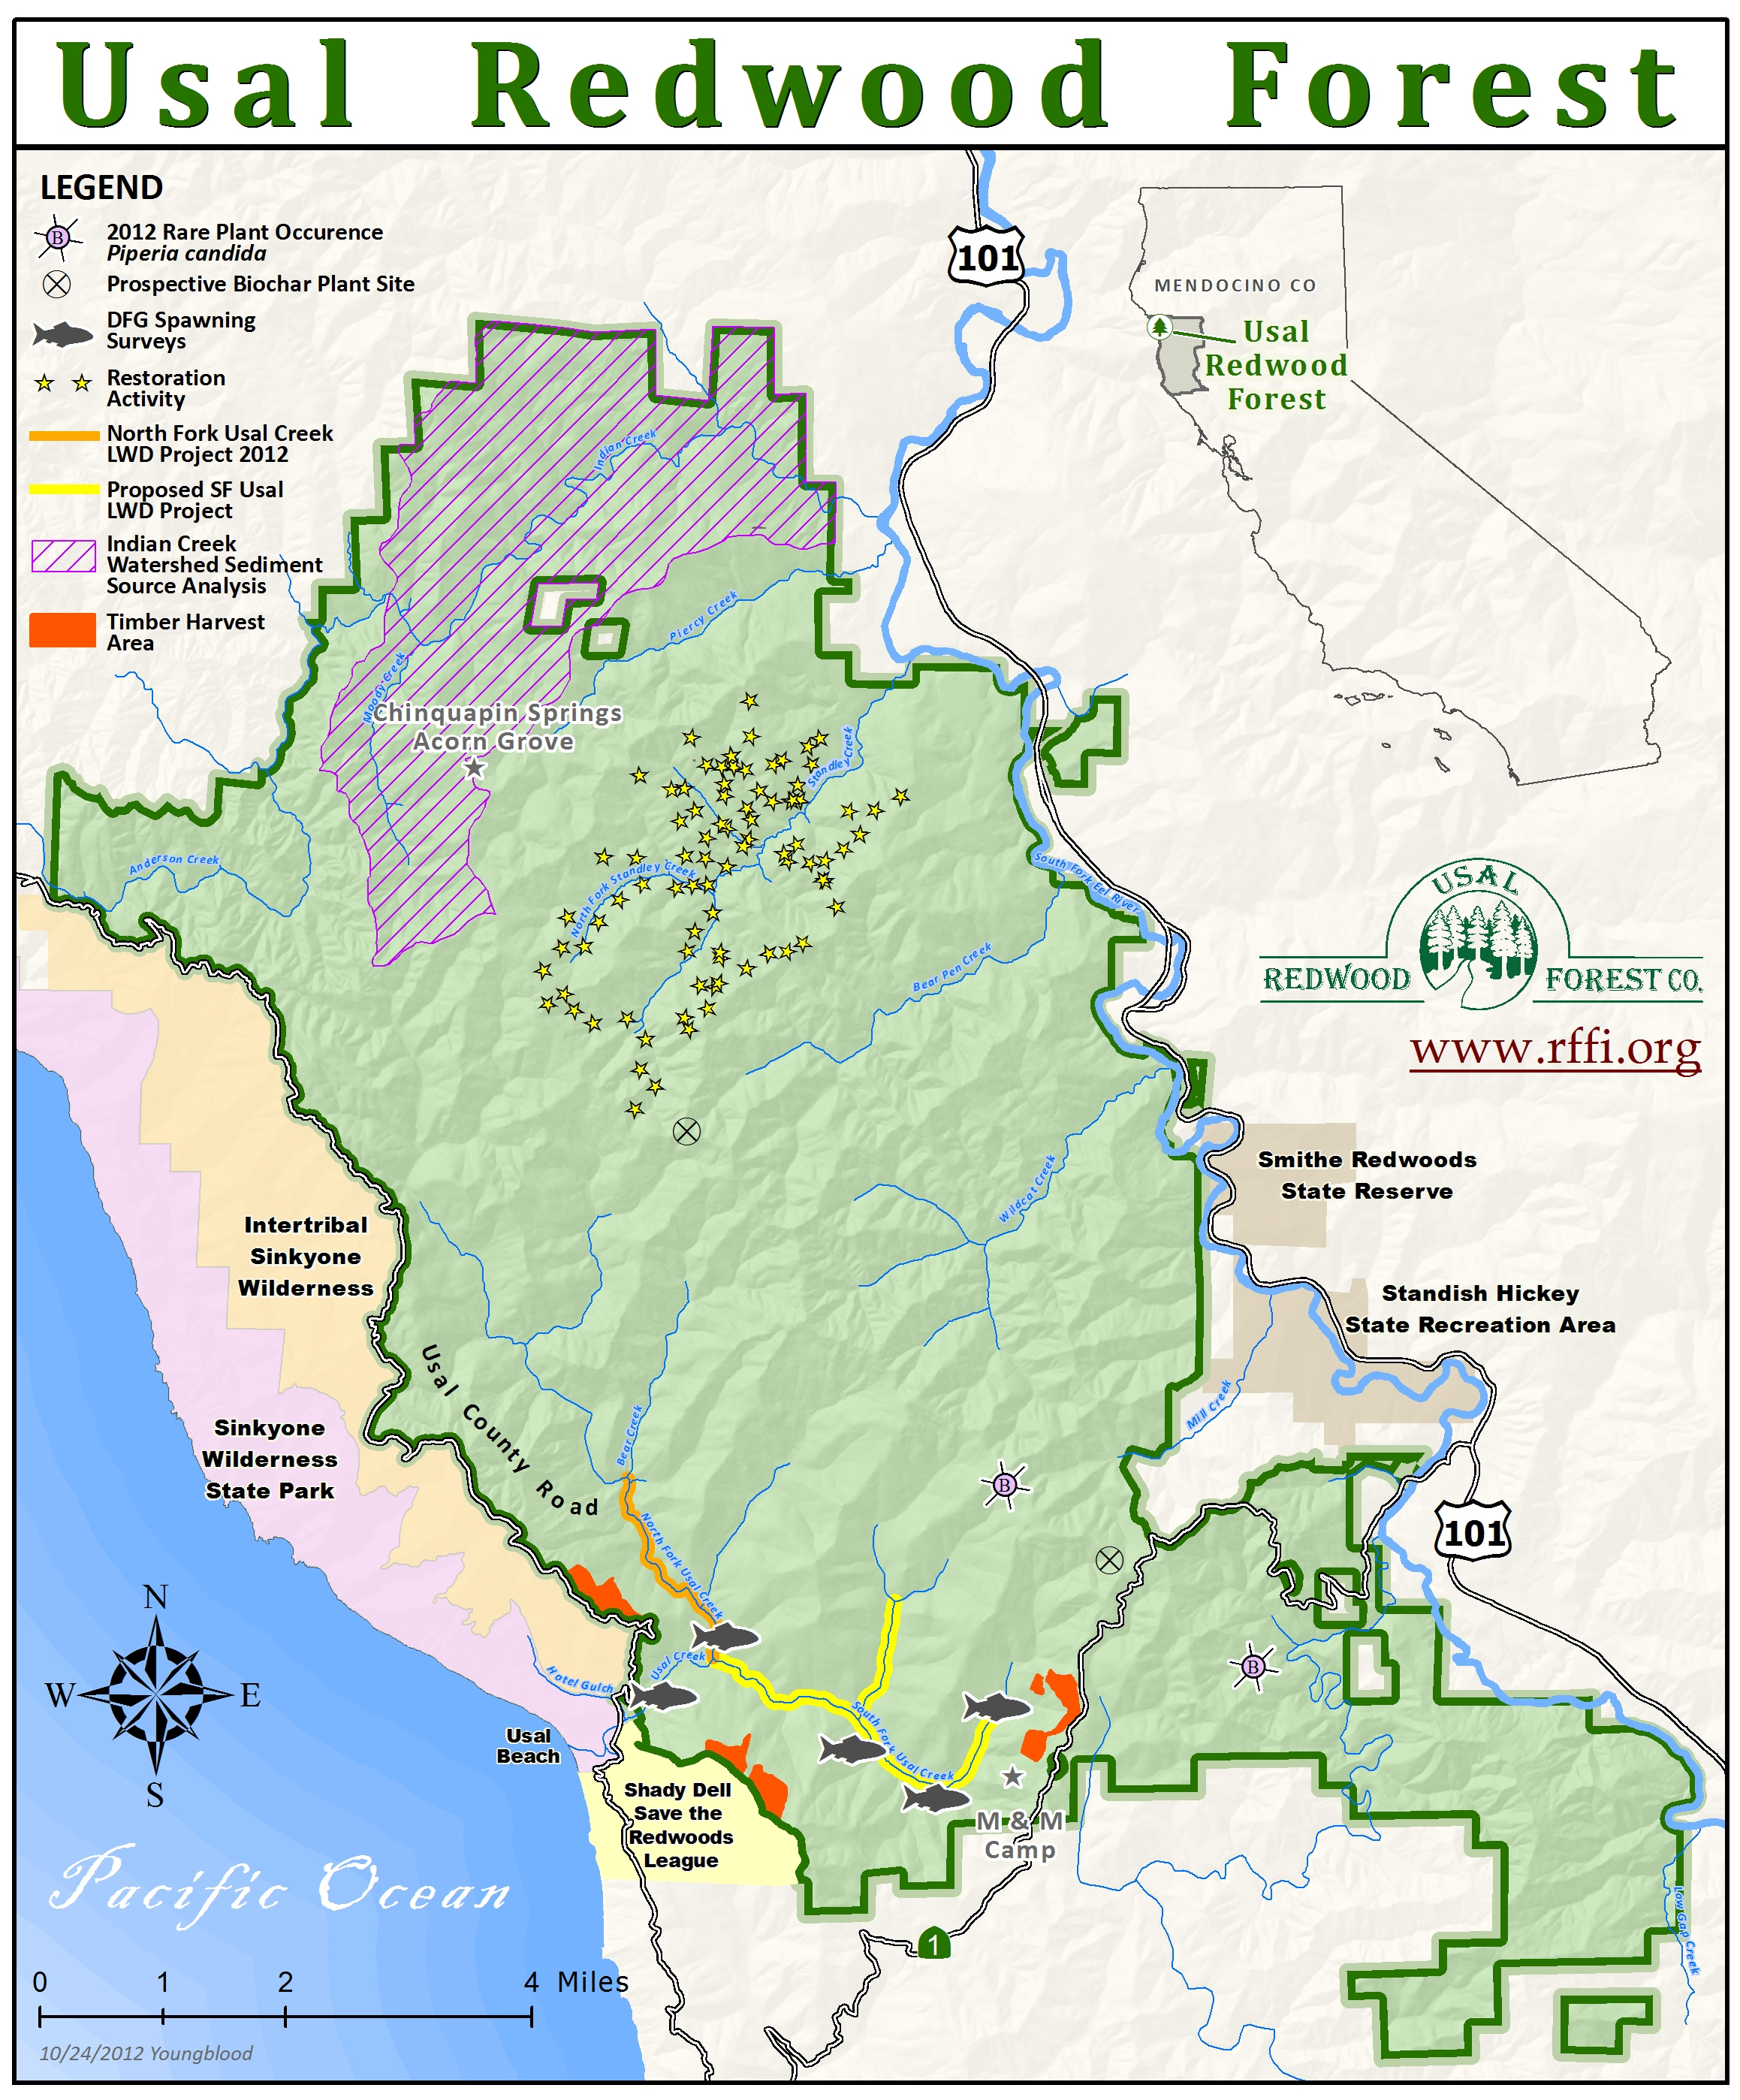 Redwood Forest Map My Blog At California Redwoods - Touran - Redwood Forest California Map